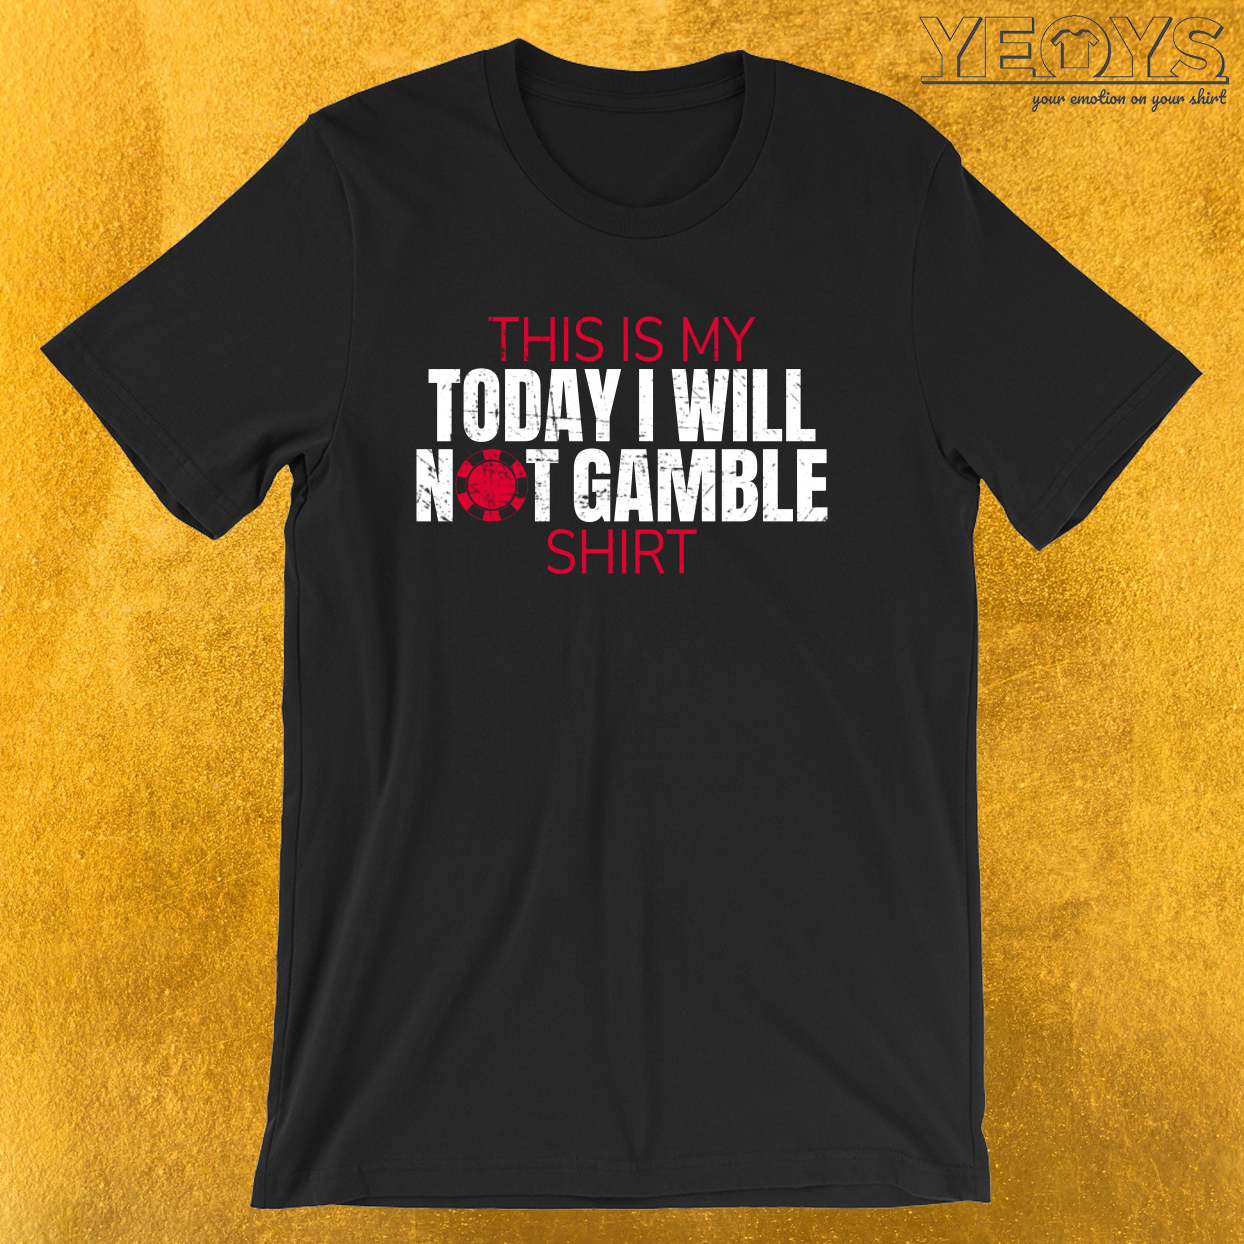 This Is My Today I Will Not Gamble Shirt – Gambling Problem Tee